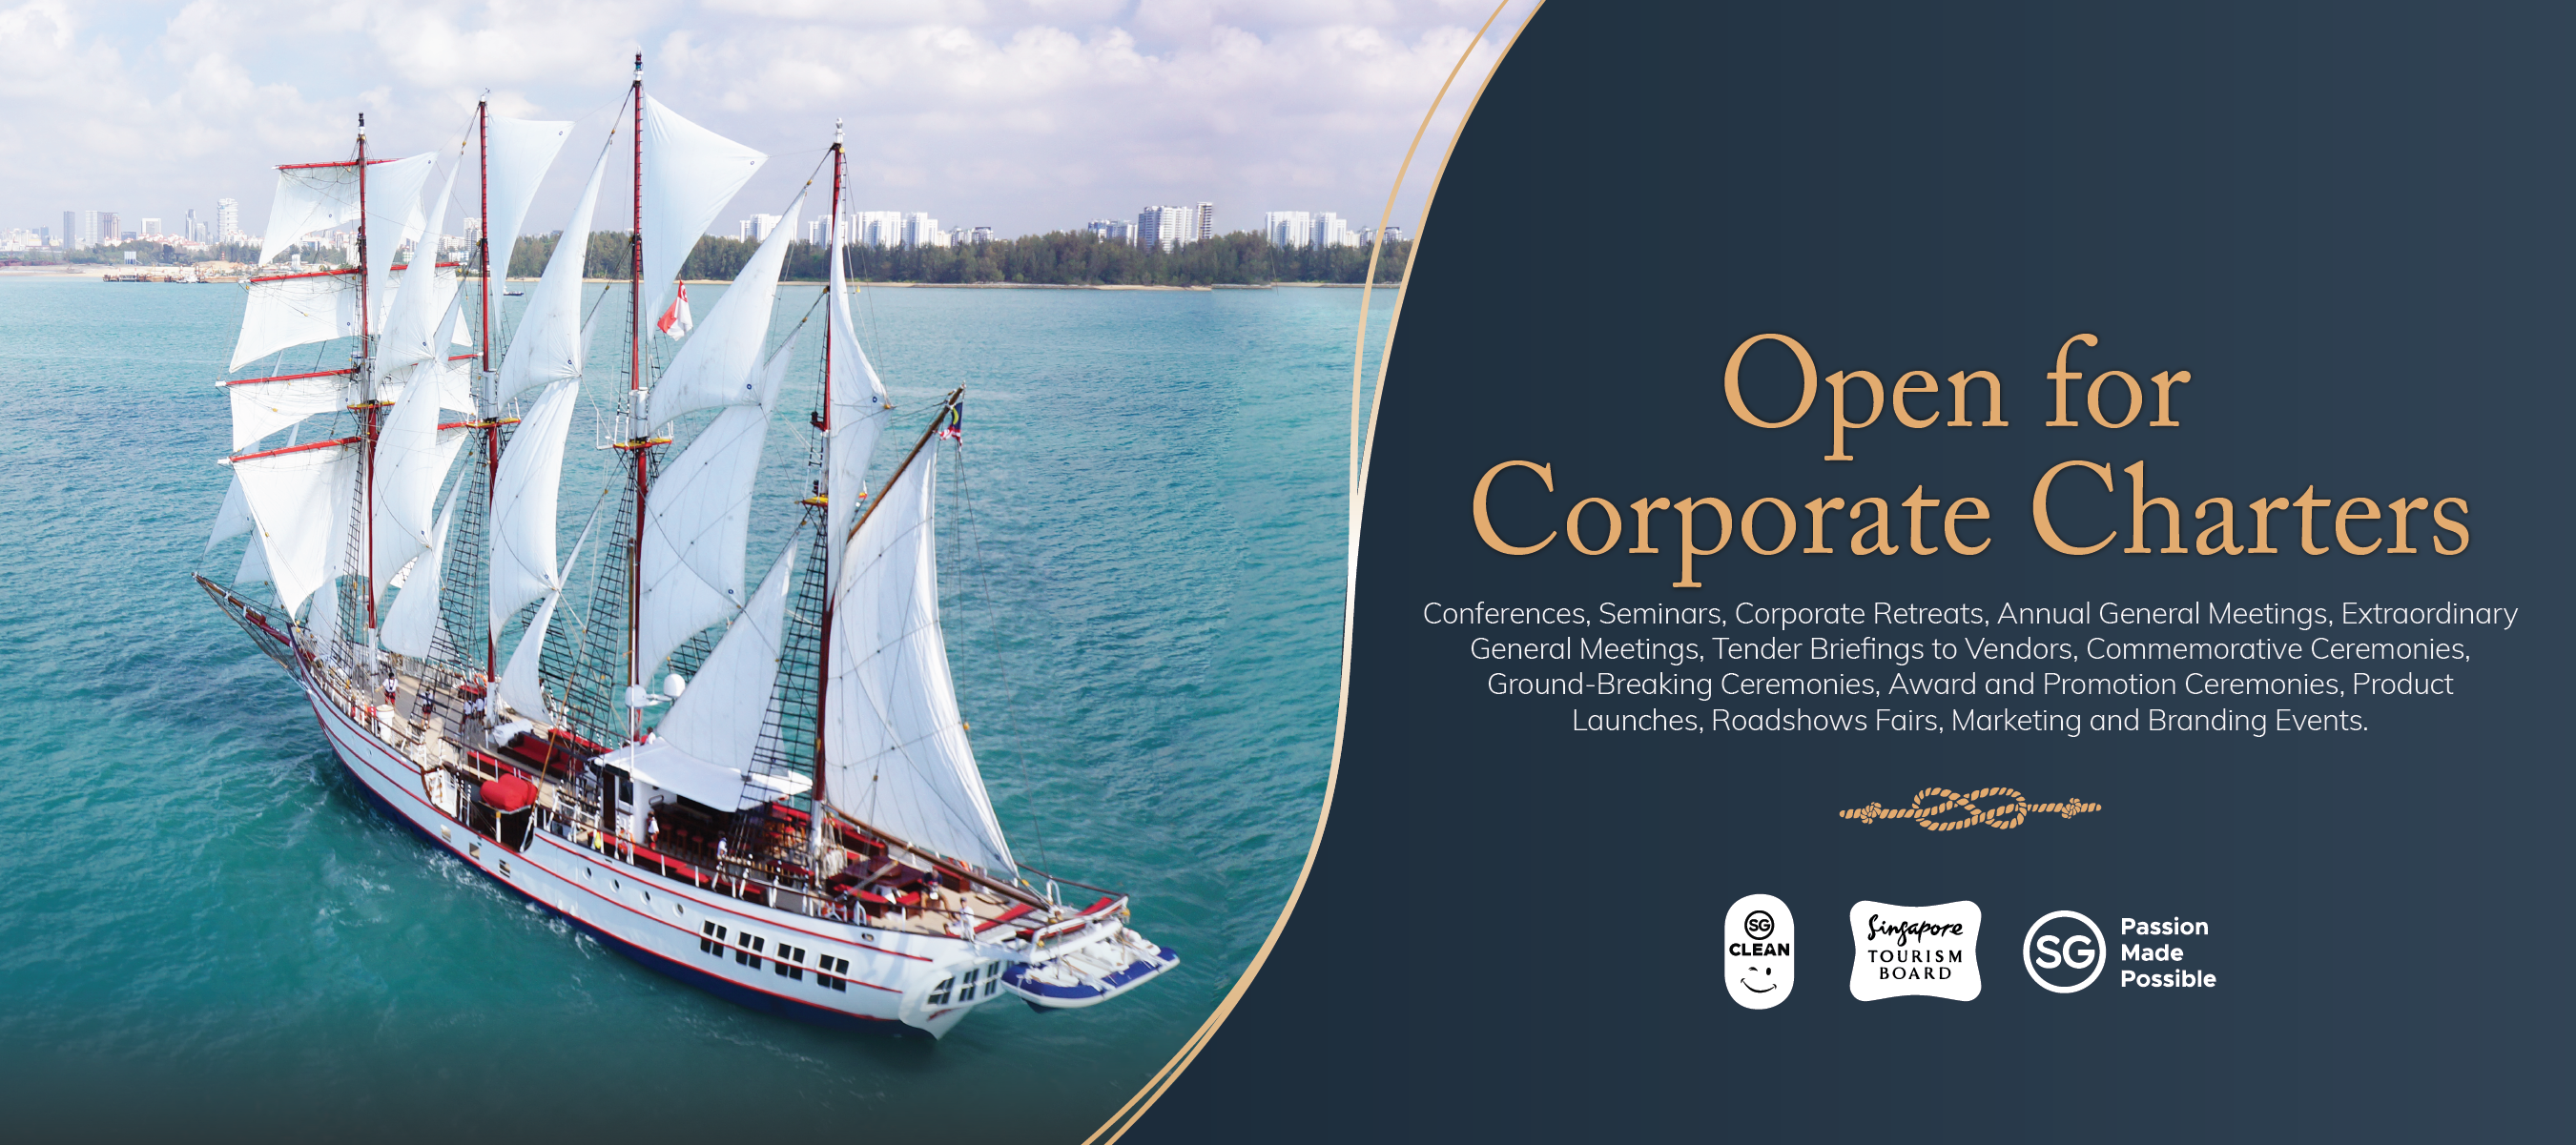 CorporateBanner3_Webanner2700x1200